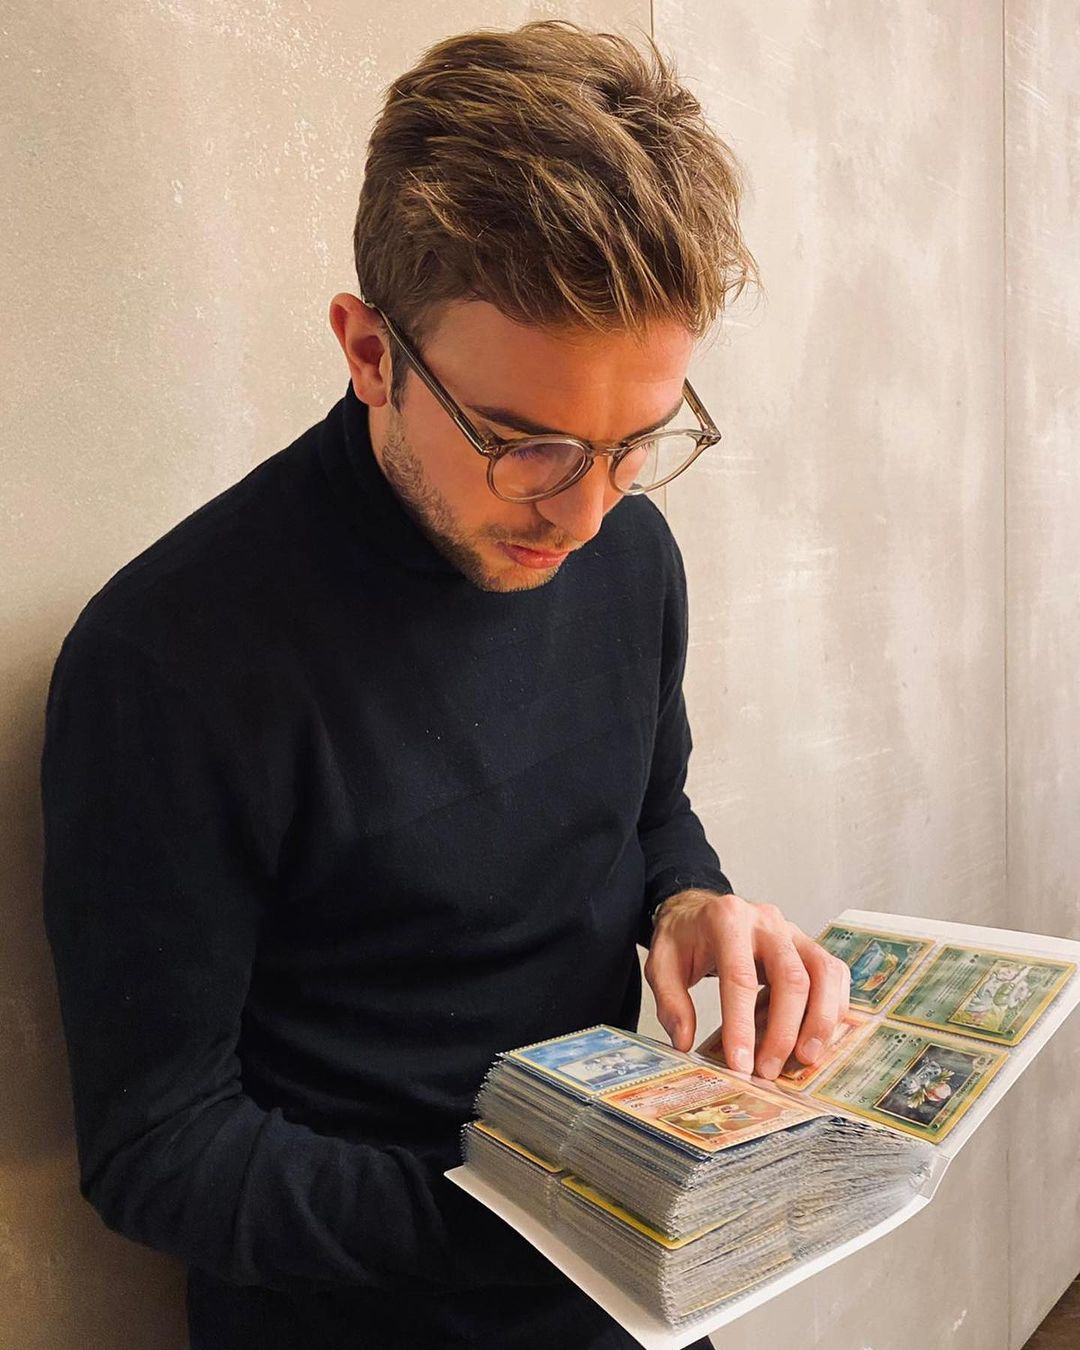 Germany and Borussia Mönchengladbach midfielder Christoph Kramer shows off his full set of all 151 original Pokémon cards